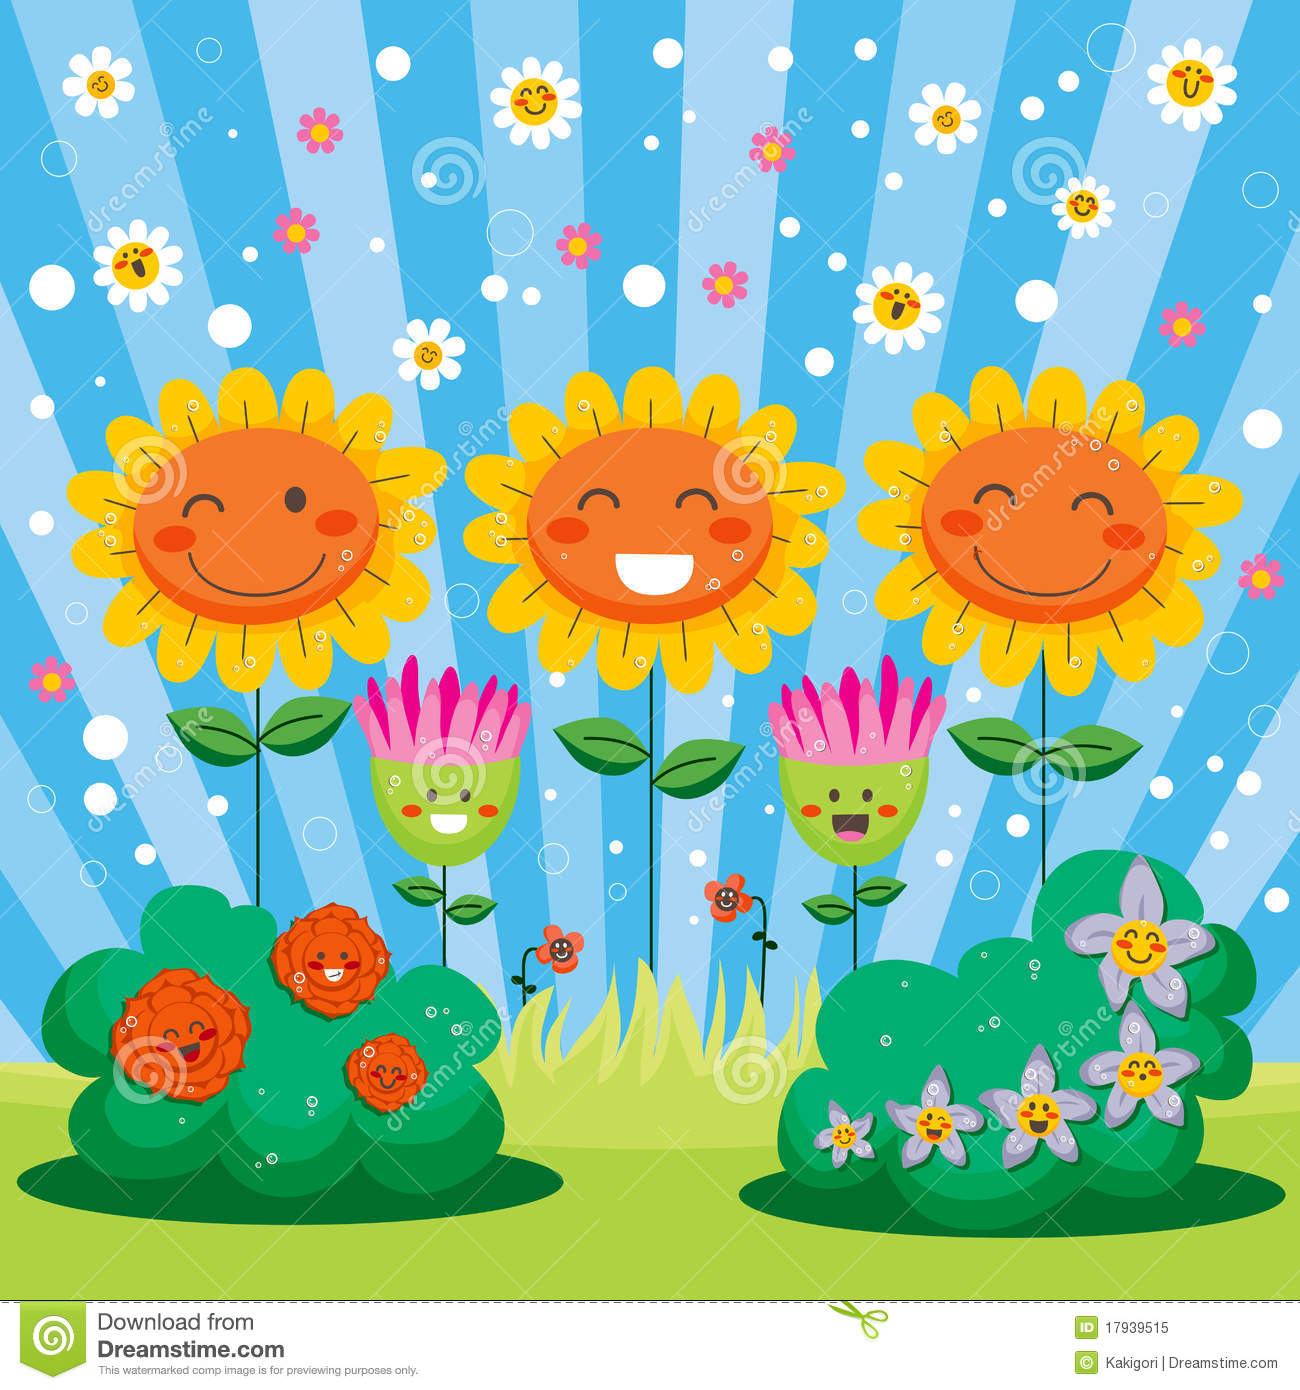 Spring flowers clipart clipart kid - Royalty Free Stock Photo